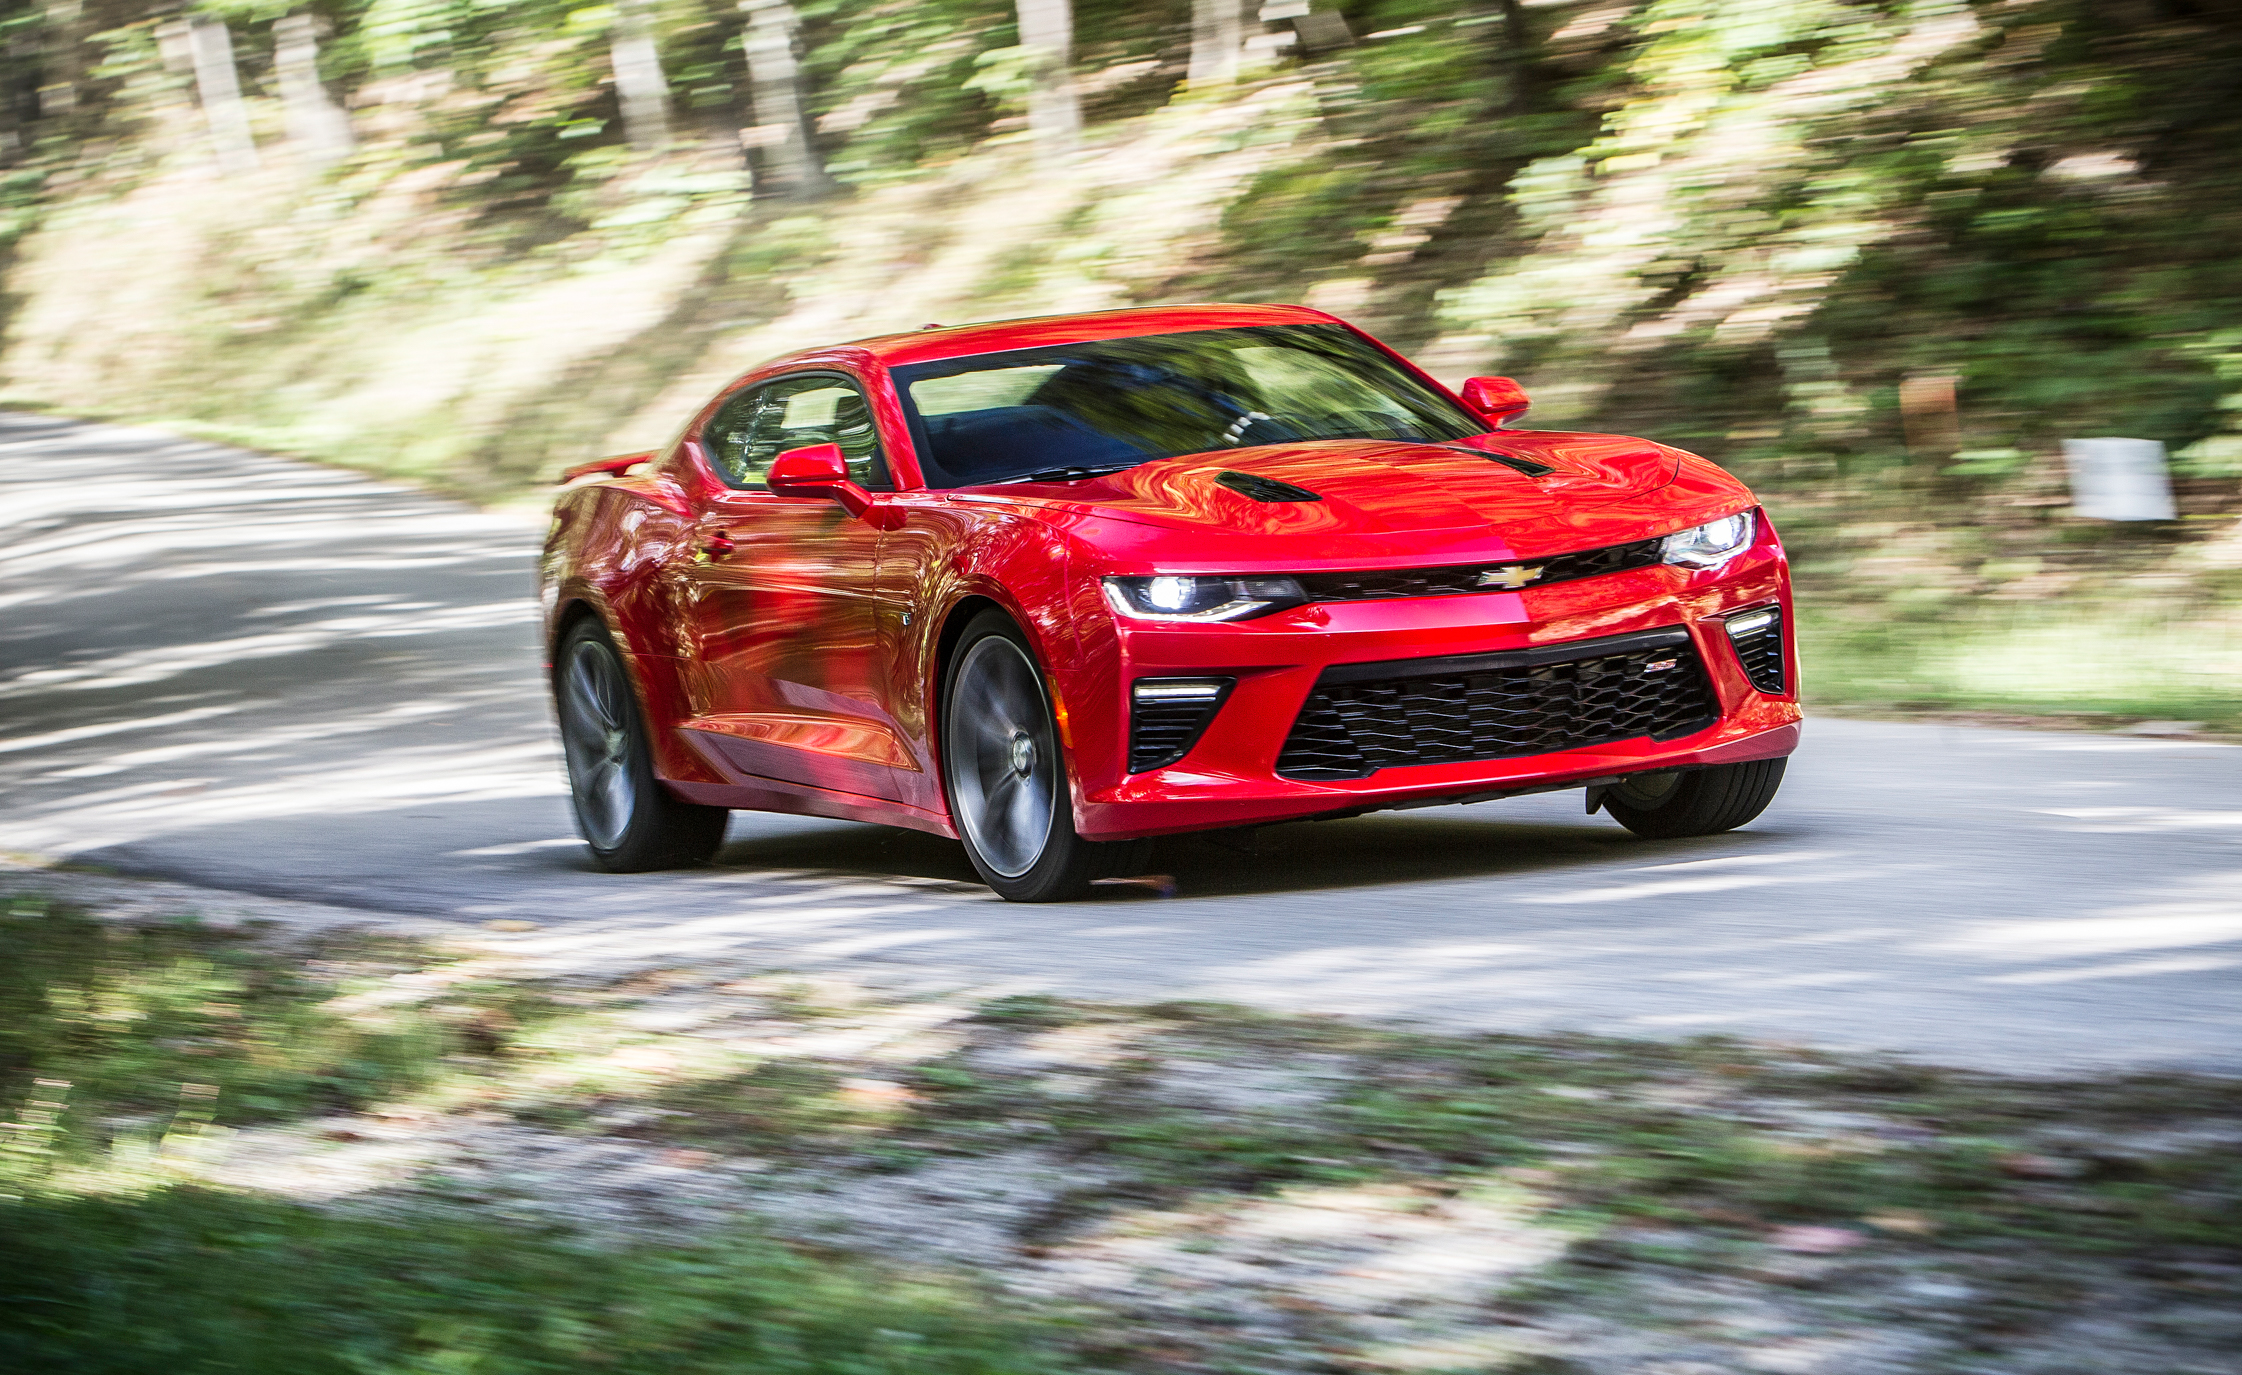 2016 chevrolet camaro ss performance test 6308 cars performance reviews and test drive. Black Bedroom Furniture Sets. Home Design Ideas